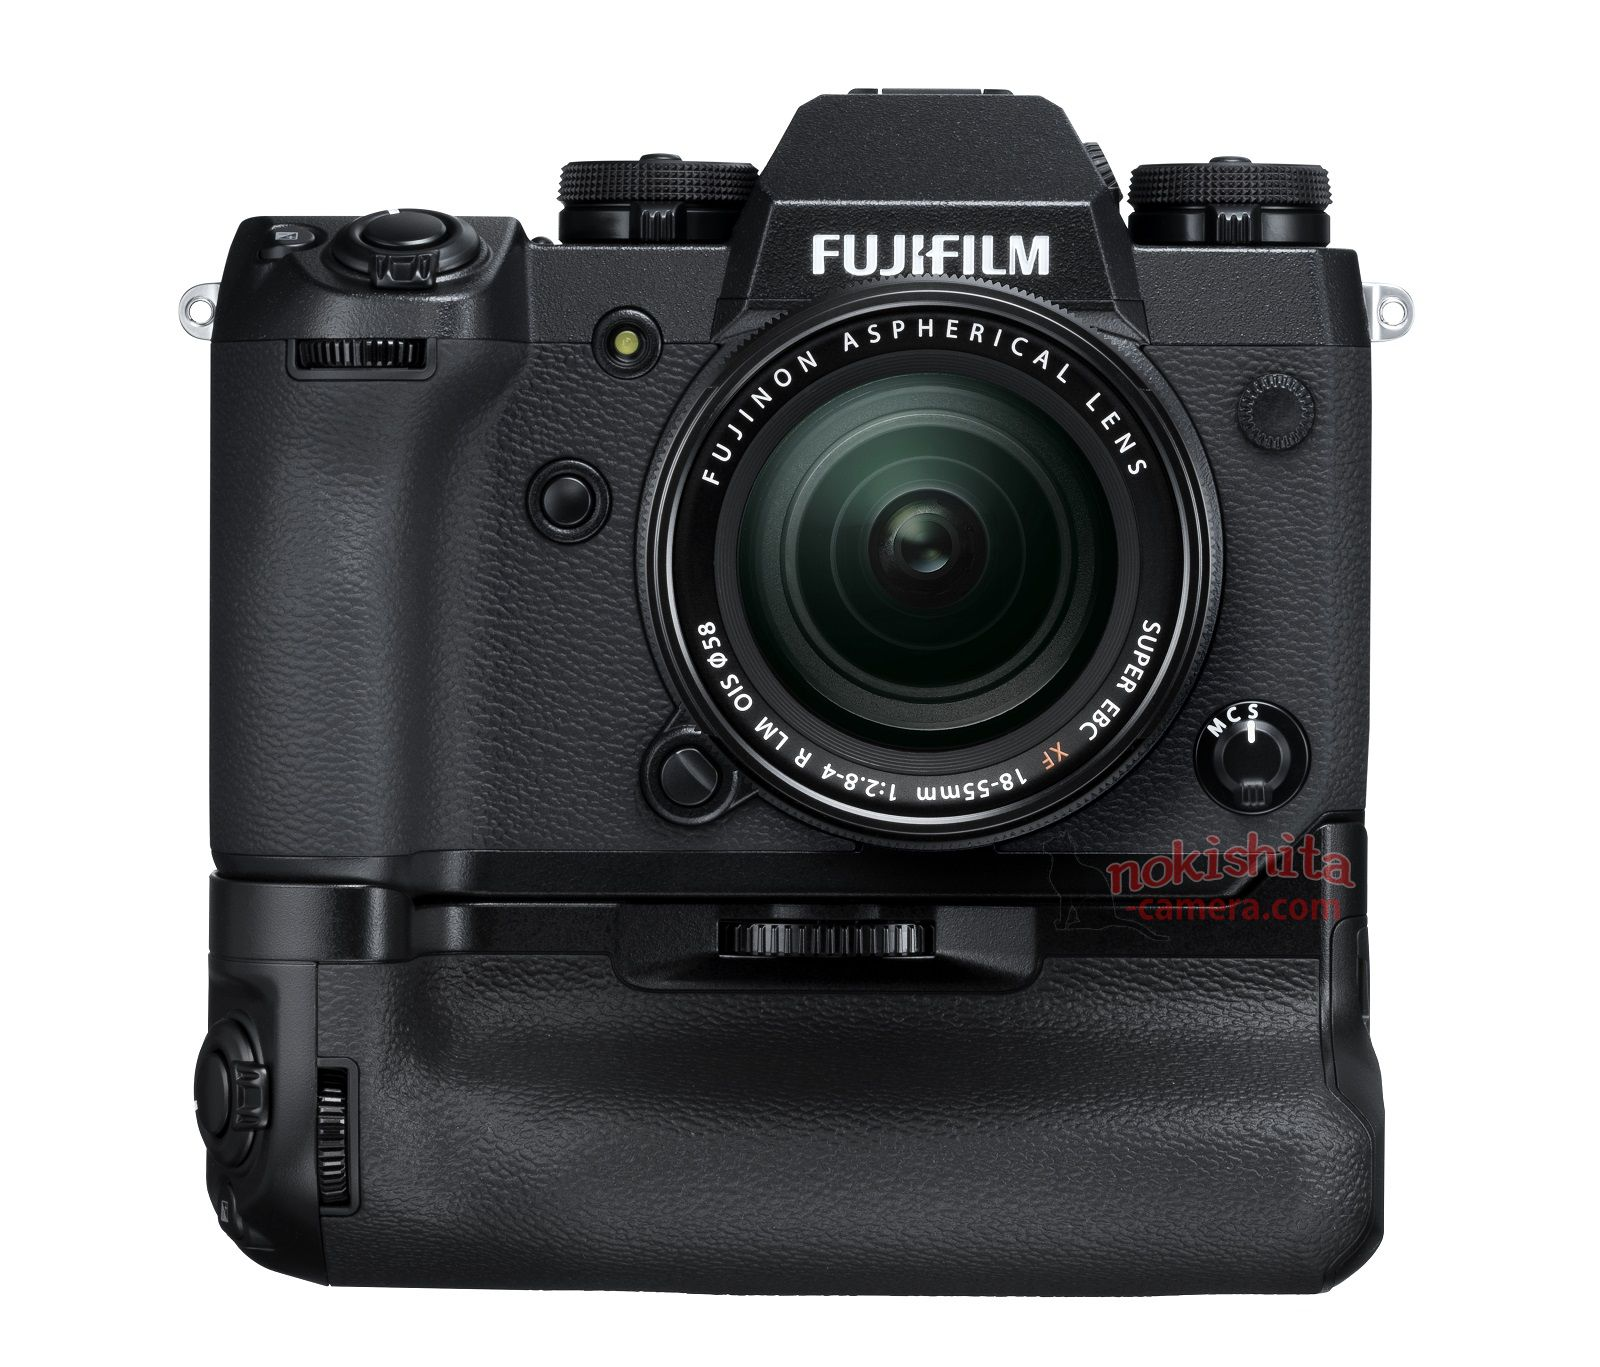 Fuji X Wedding Photography: Here Are The First Pictures Of The Upcoming Fuji X-H1